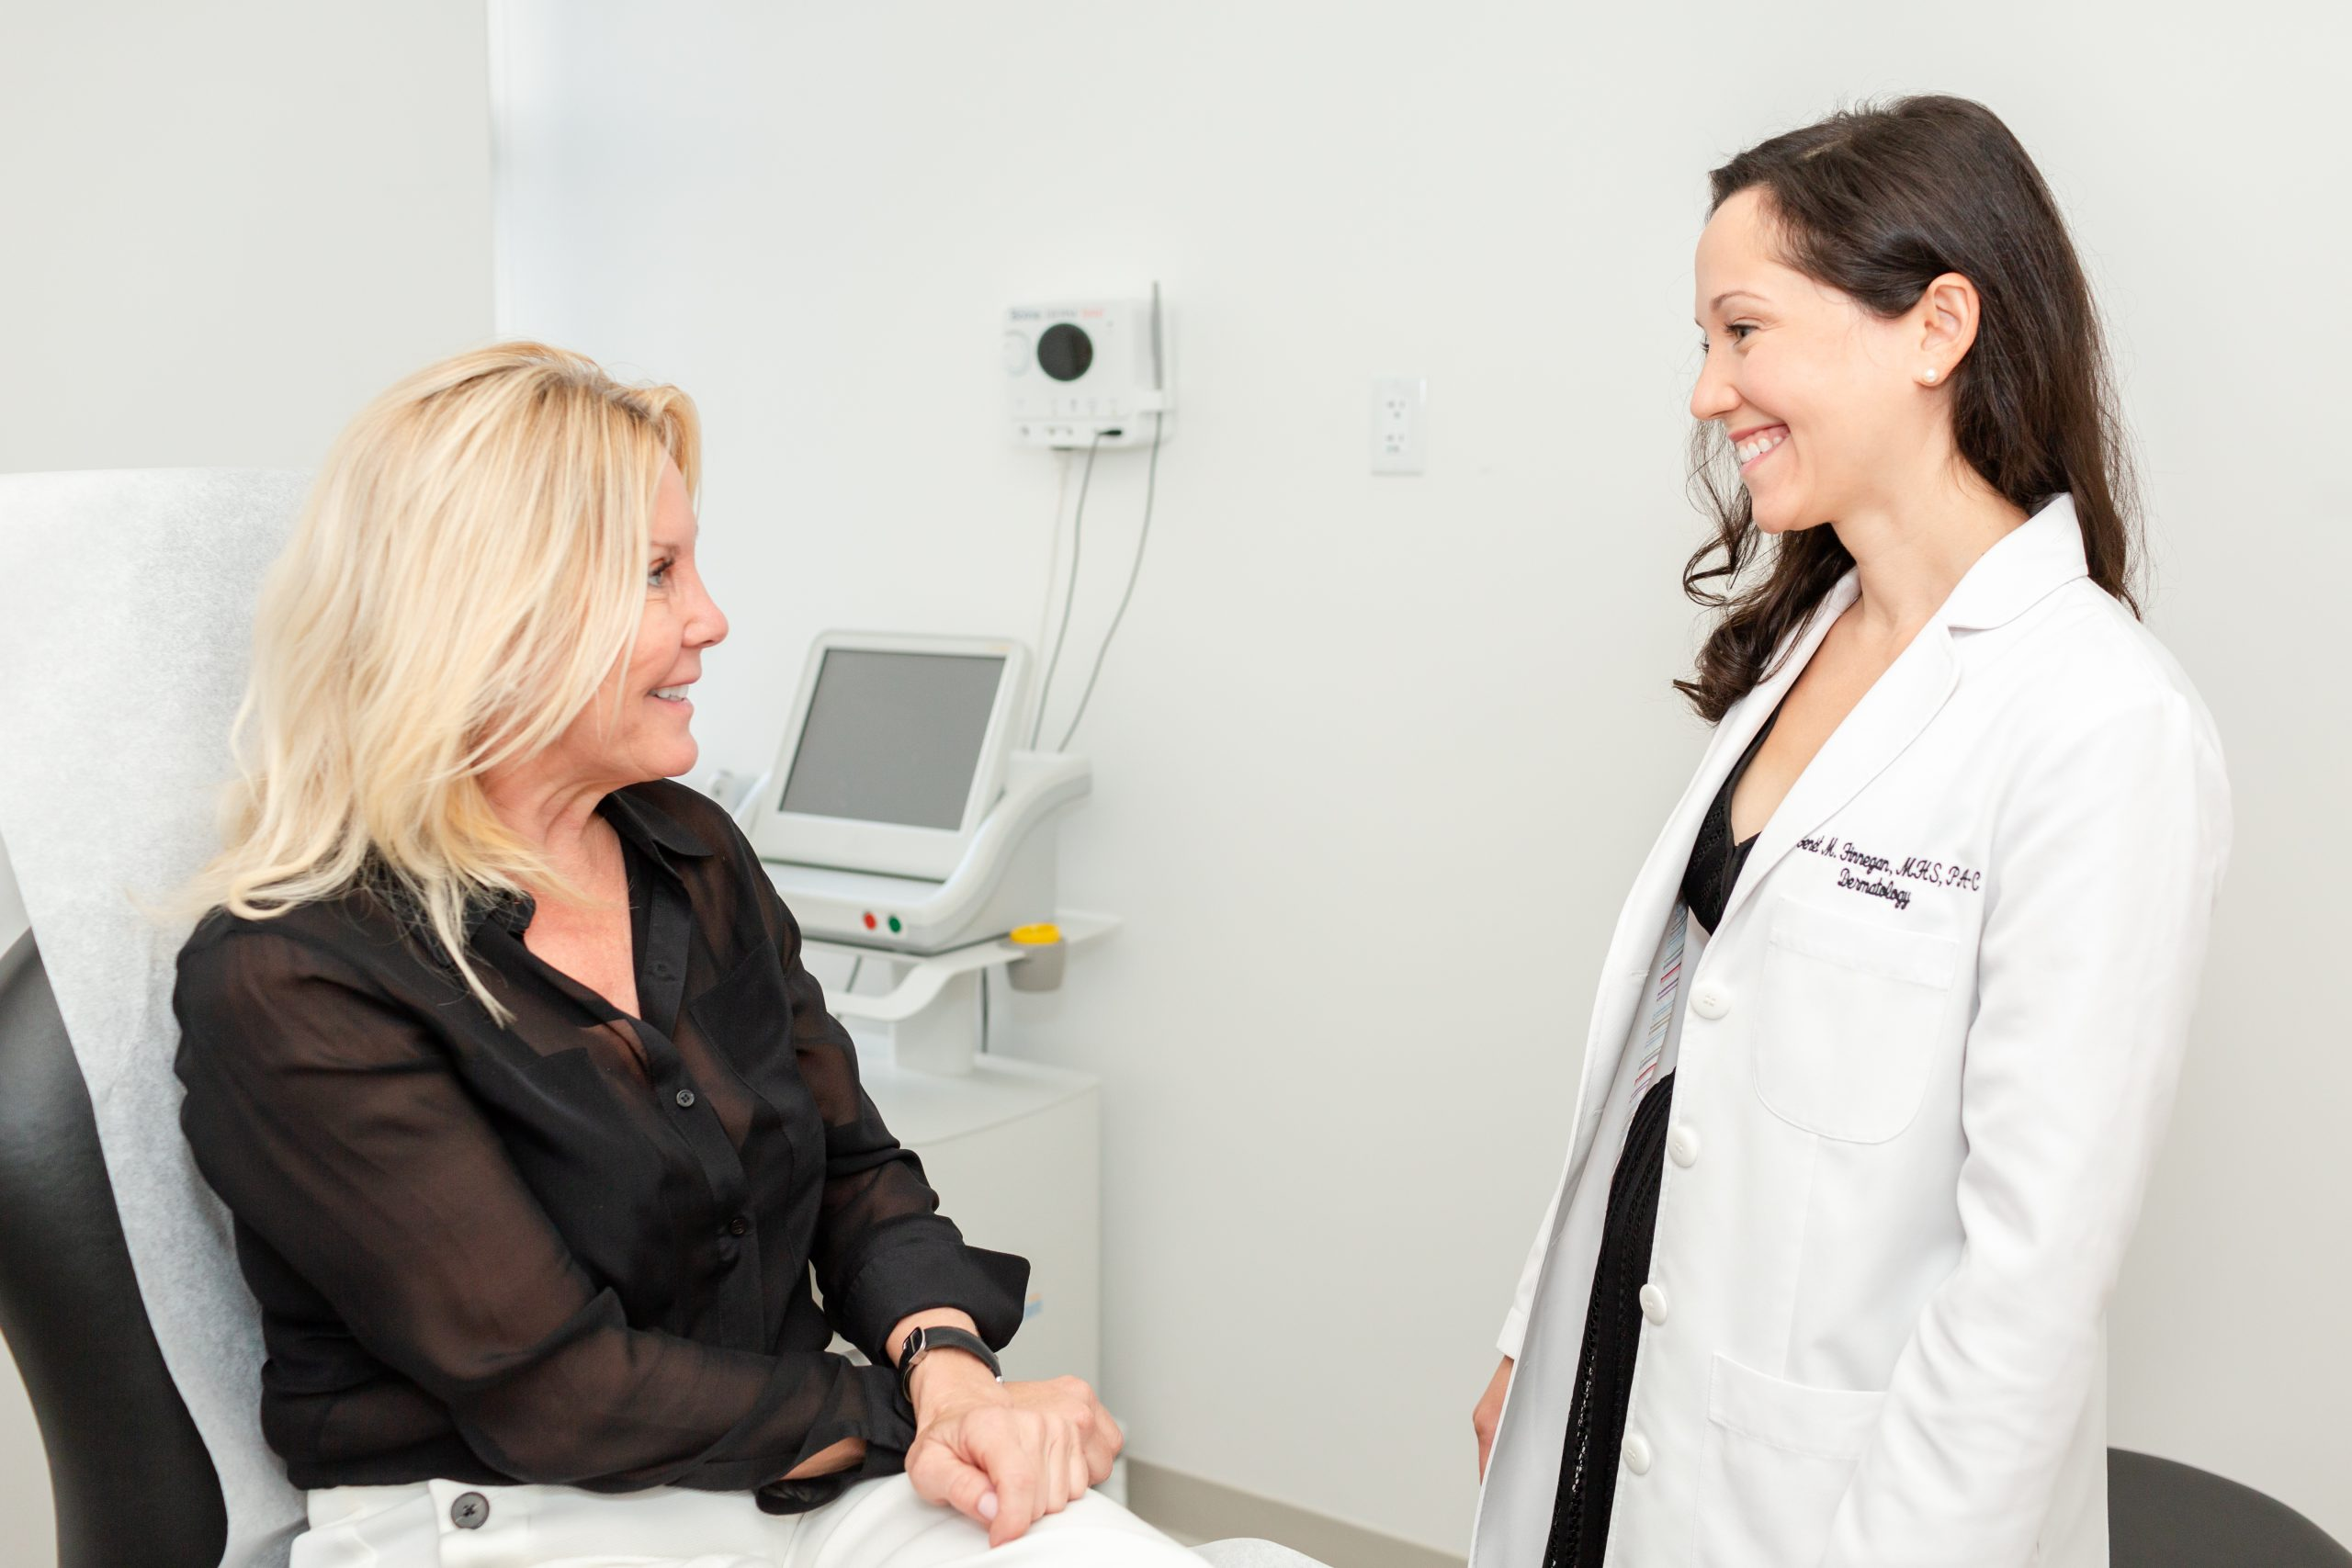 Consultation for cellulite in New York City